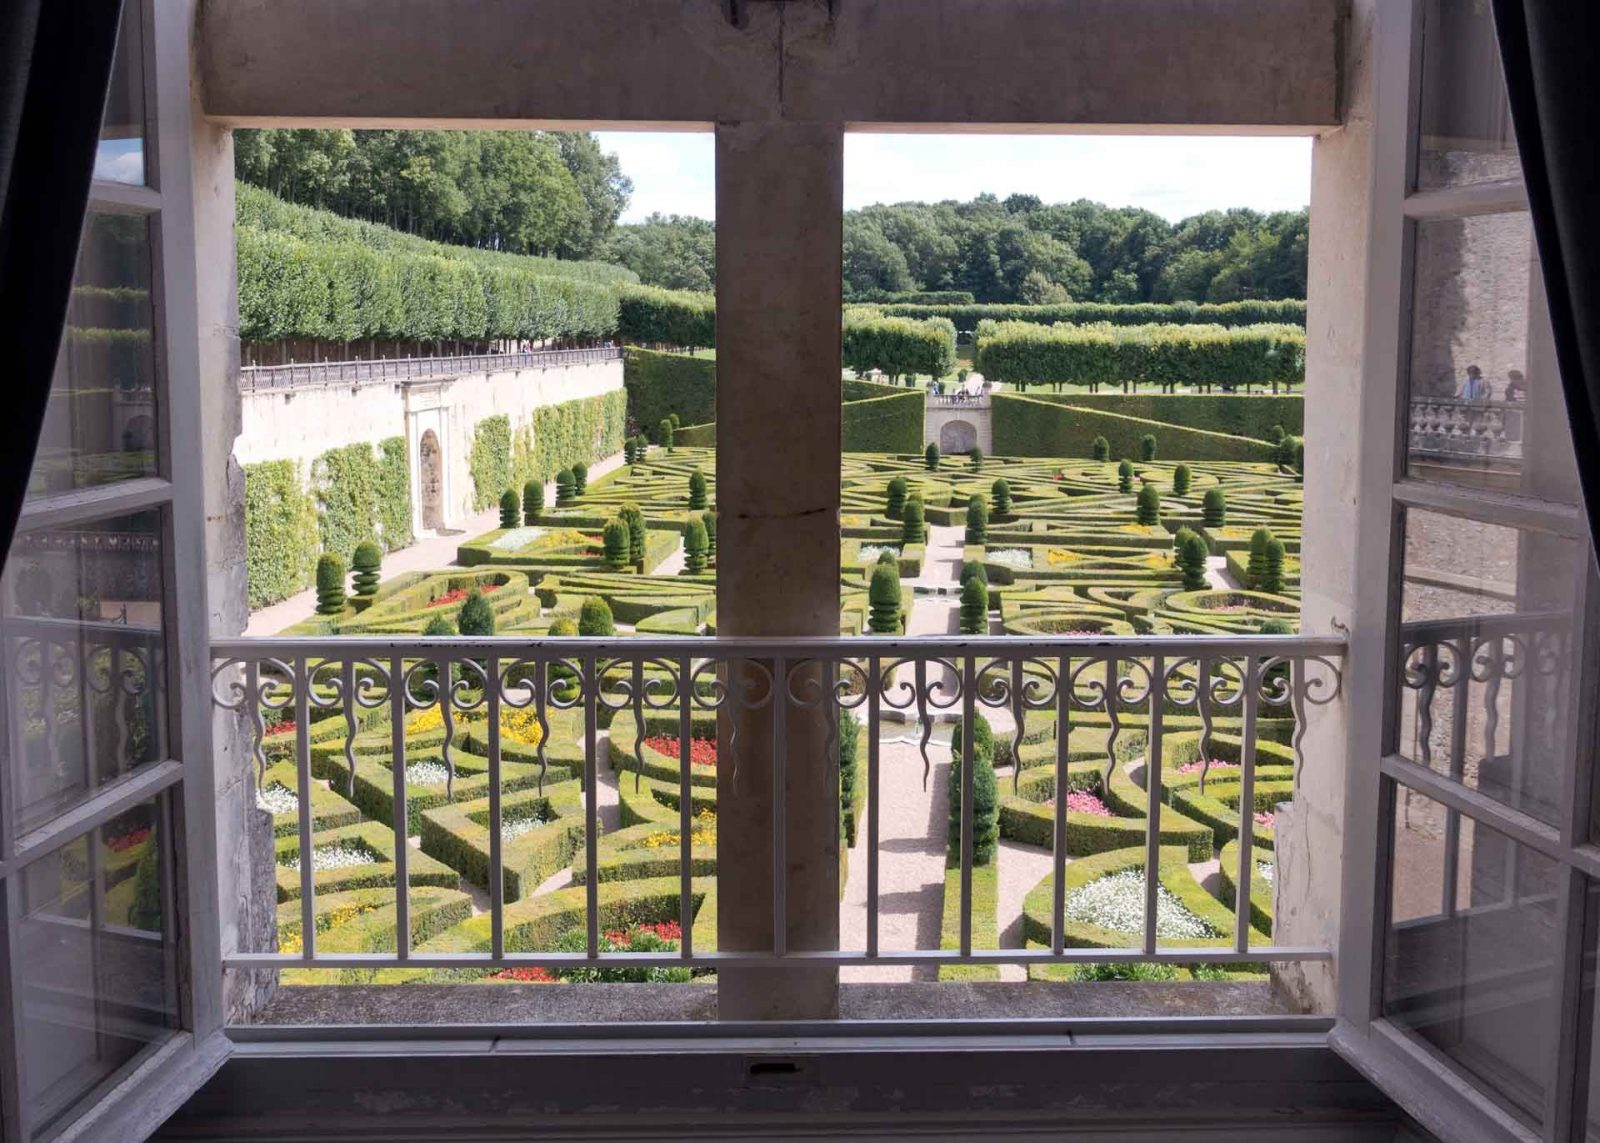 A Hard Lesson in Garden Design at Chateau Villandry on Falcondale Life Blog. This Loire Valley Chateau is famous for its formal French Renaissance gardens and is popular place for tourists to visit. I was struck by the contrast between French and English landscaping in the 18th century.